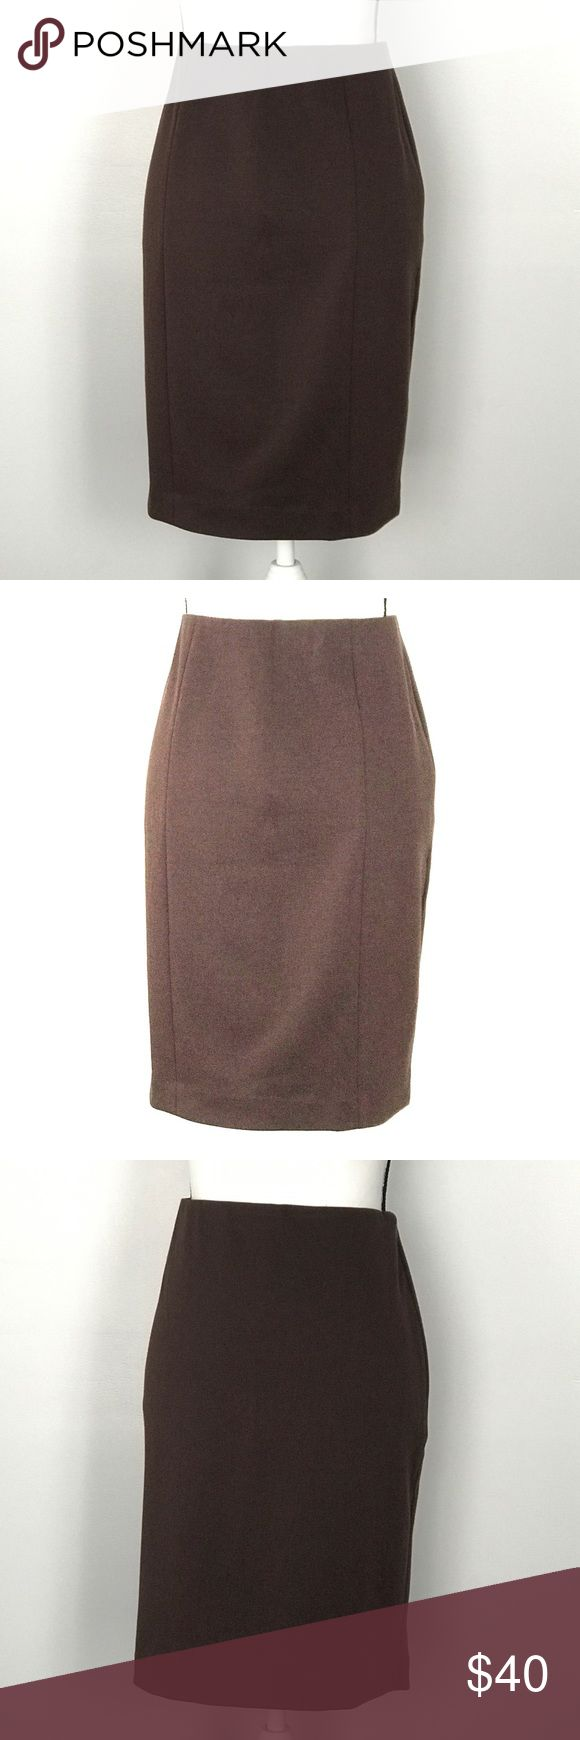 "NWT Vince Camuto Espresso Brown Pencil Skirt New with Tags Vince Camuto Brown Pencil Skirt Waistband has some stretch Side Zipper Size 8 15"" Waist Measured Flat 21.75"" Long MSRP $79.00 Vince Camuto Skirts Pencil"